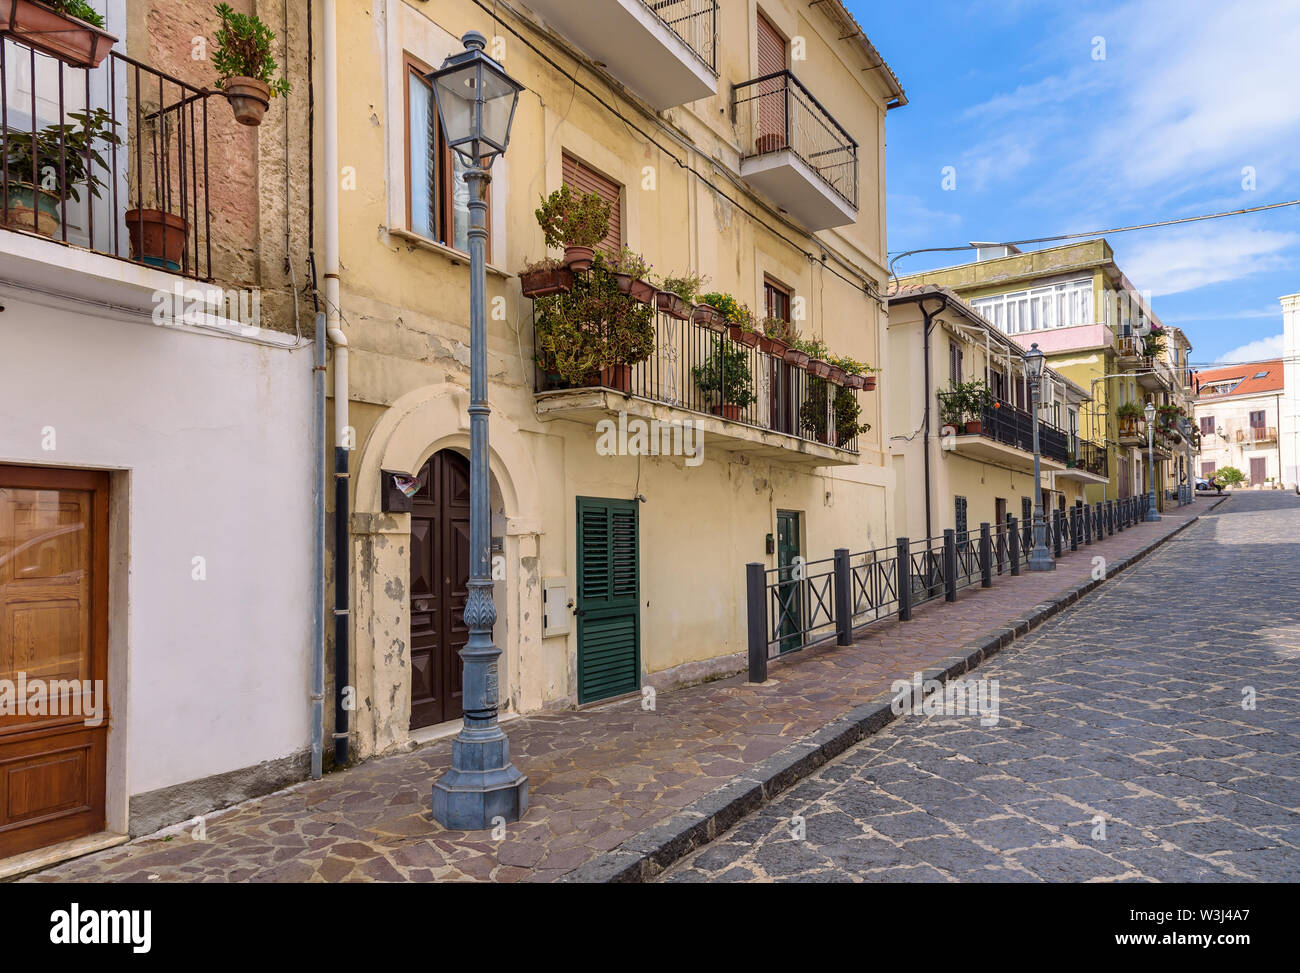 View of residential buildings at the picturesque alley in Pizzo town, Calabria, Italy Stock Photo